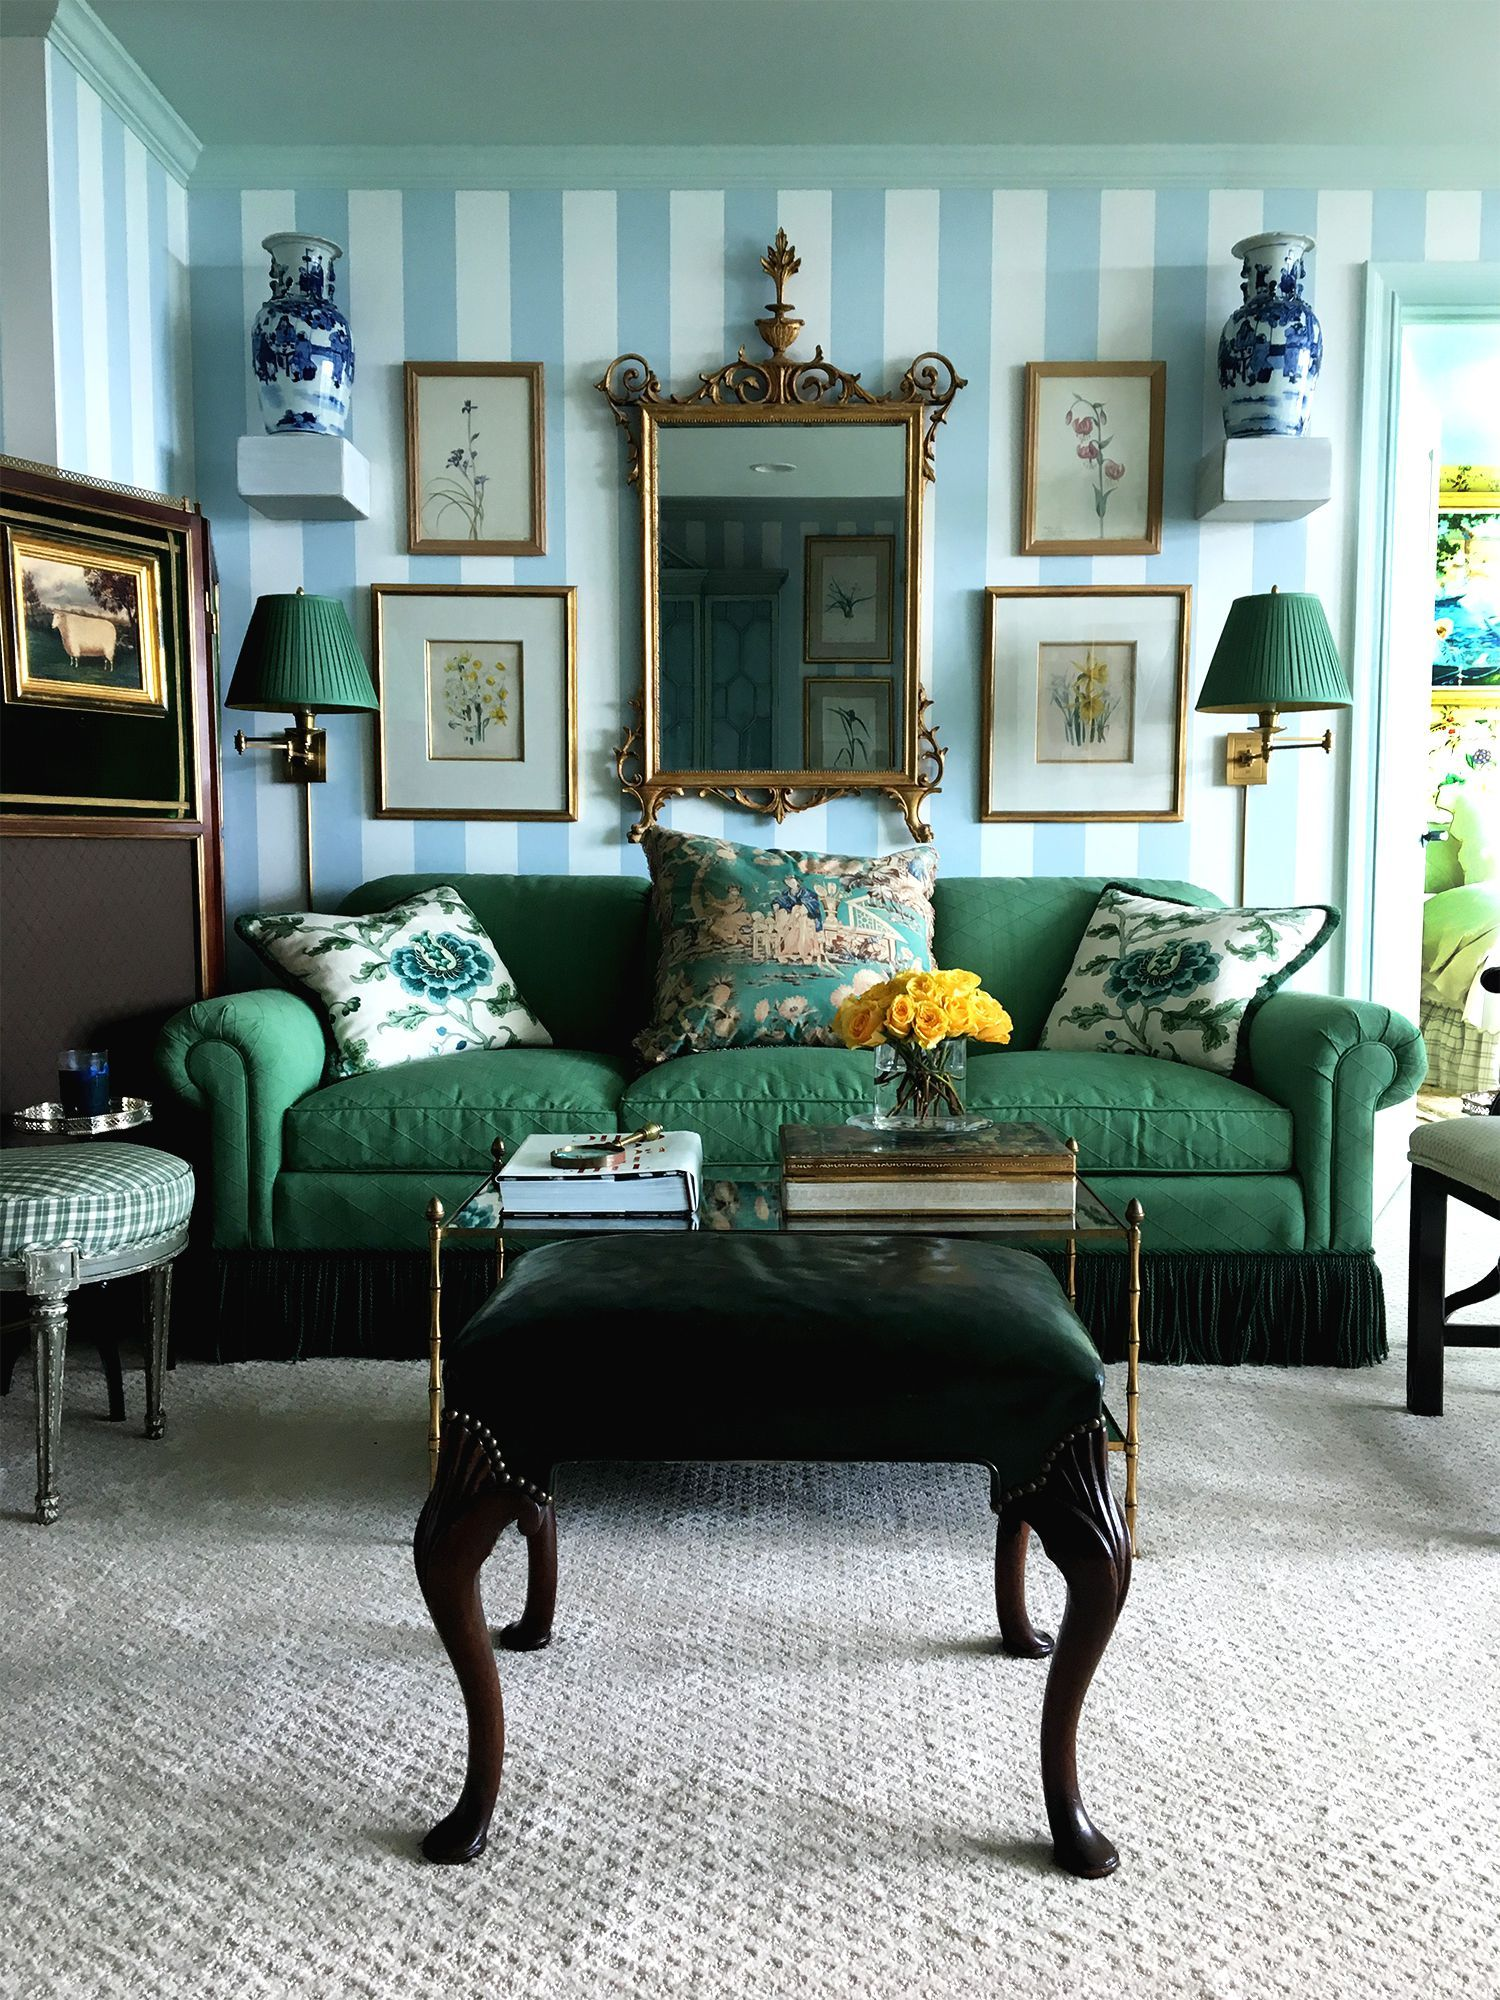 Yes retirement homes can be chic  if miles redd is involved also feels rh pinterest